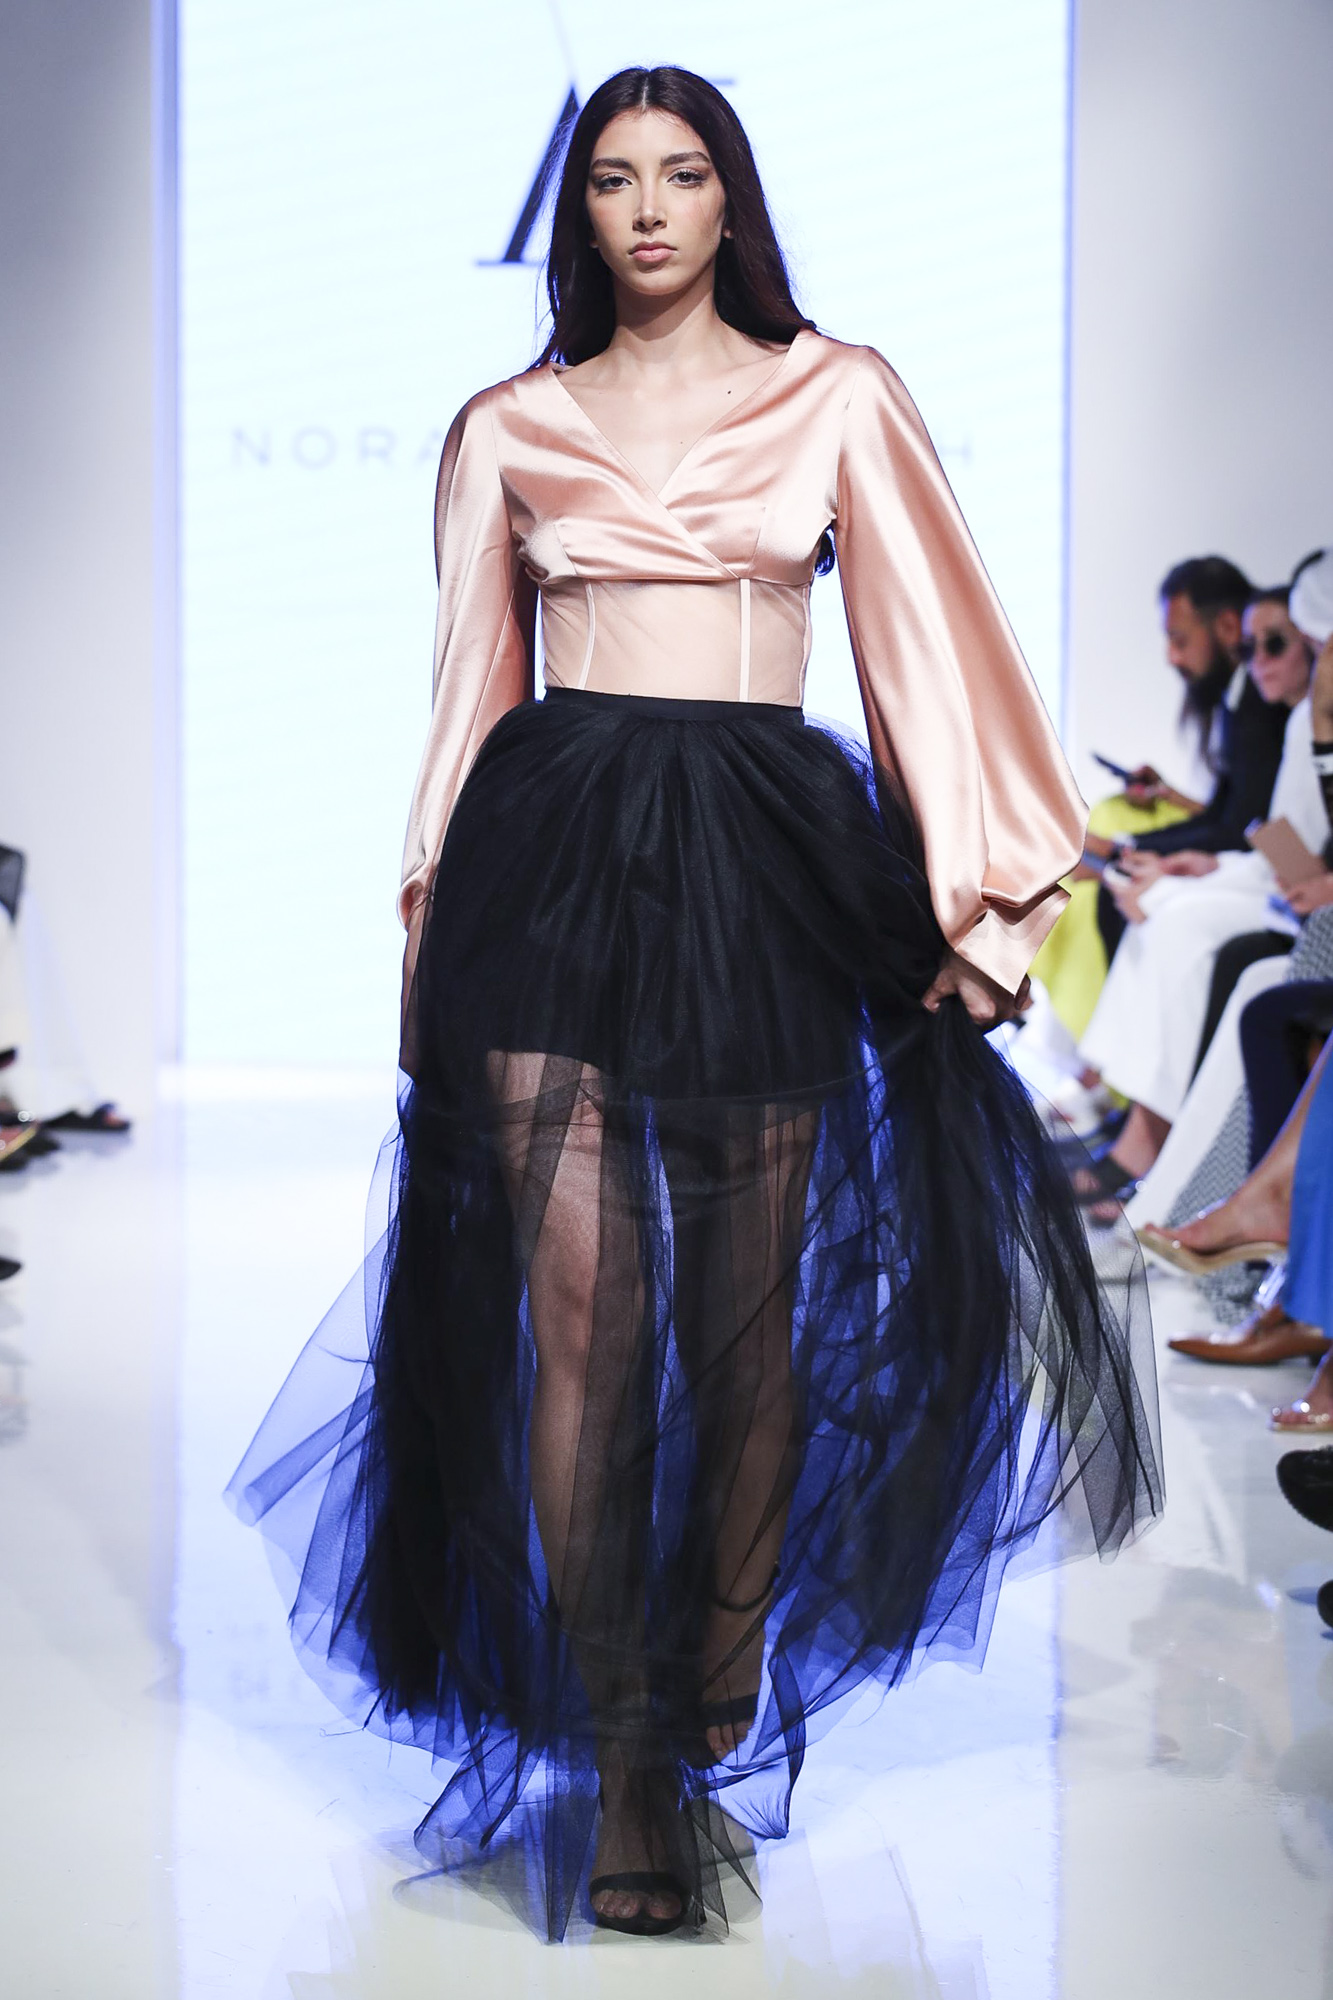 Nora Al Shaikh fashion show, Arab Fashion Week collection Spring Summer 2020 in Dubai